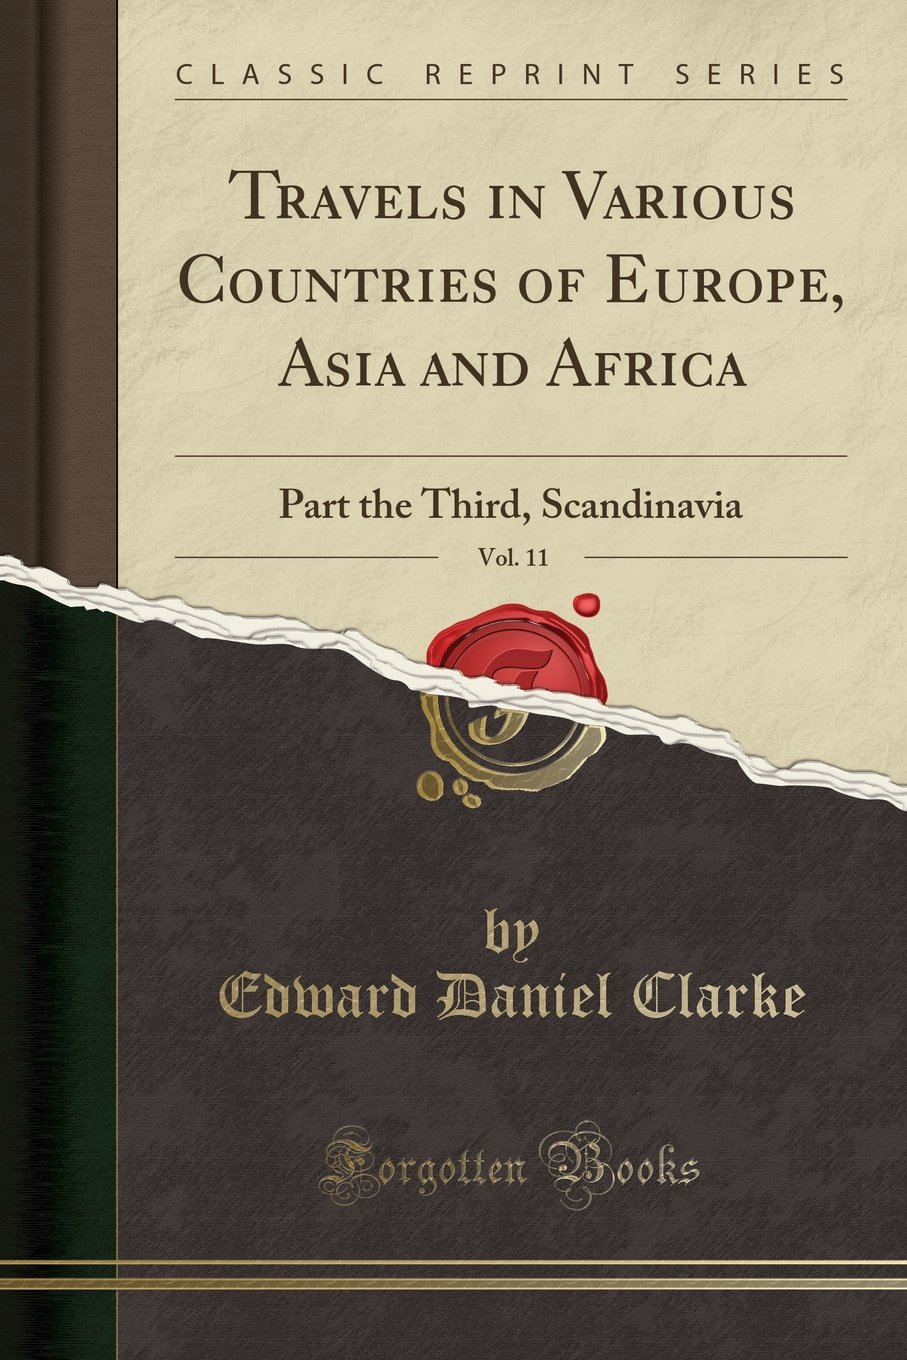 Travels in Various Countries of Europe, Asia and Africa, Vol. 11: Part the Third, Scandinavia (Classic Reprint) ebook